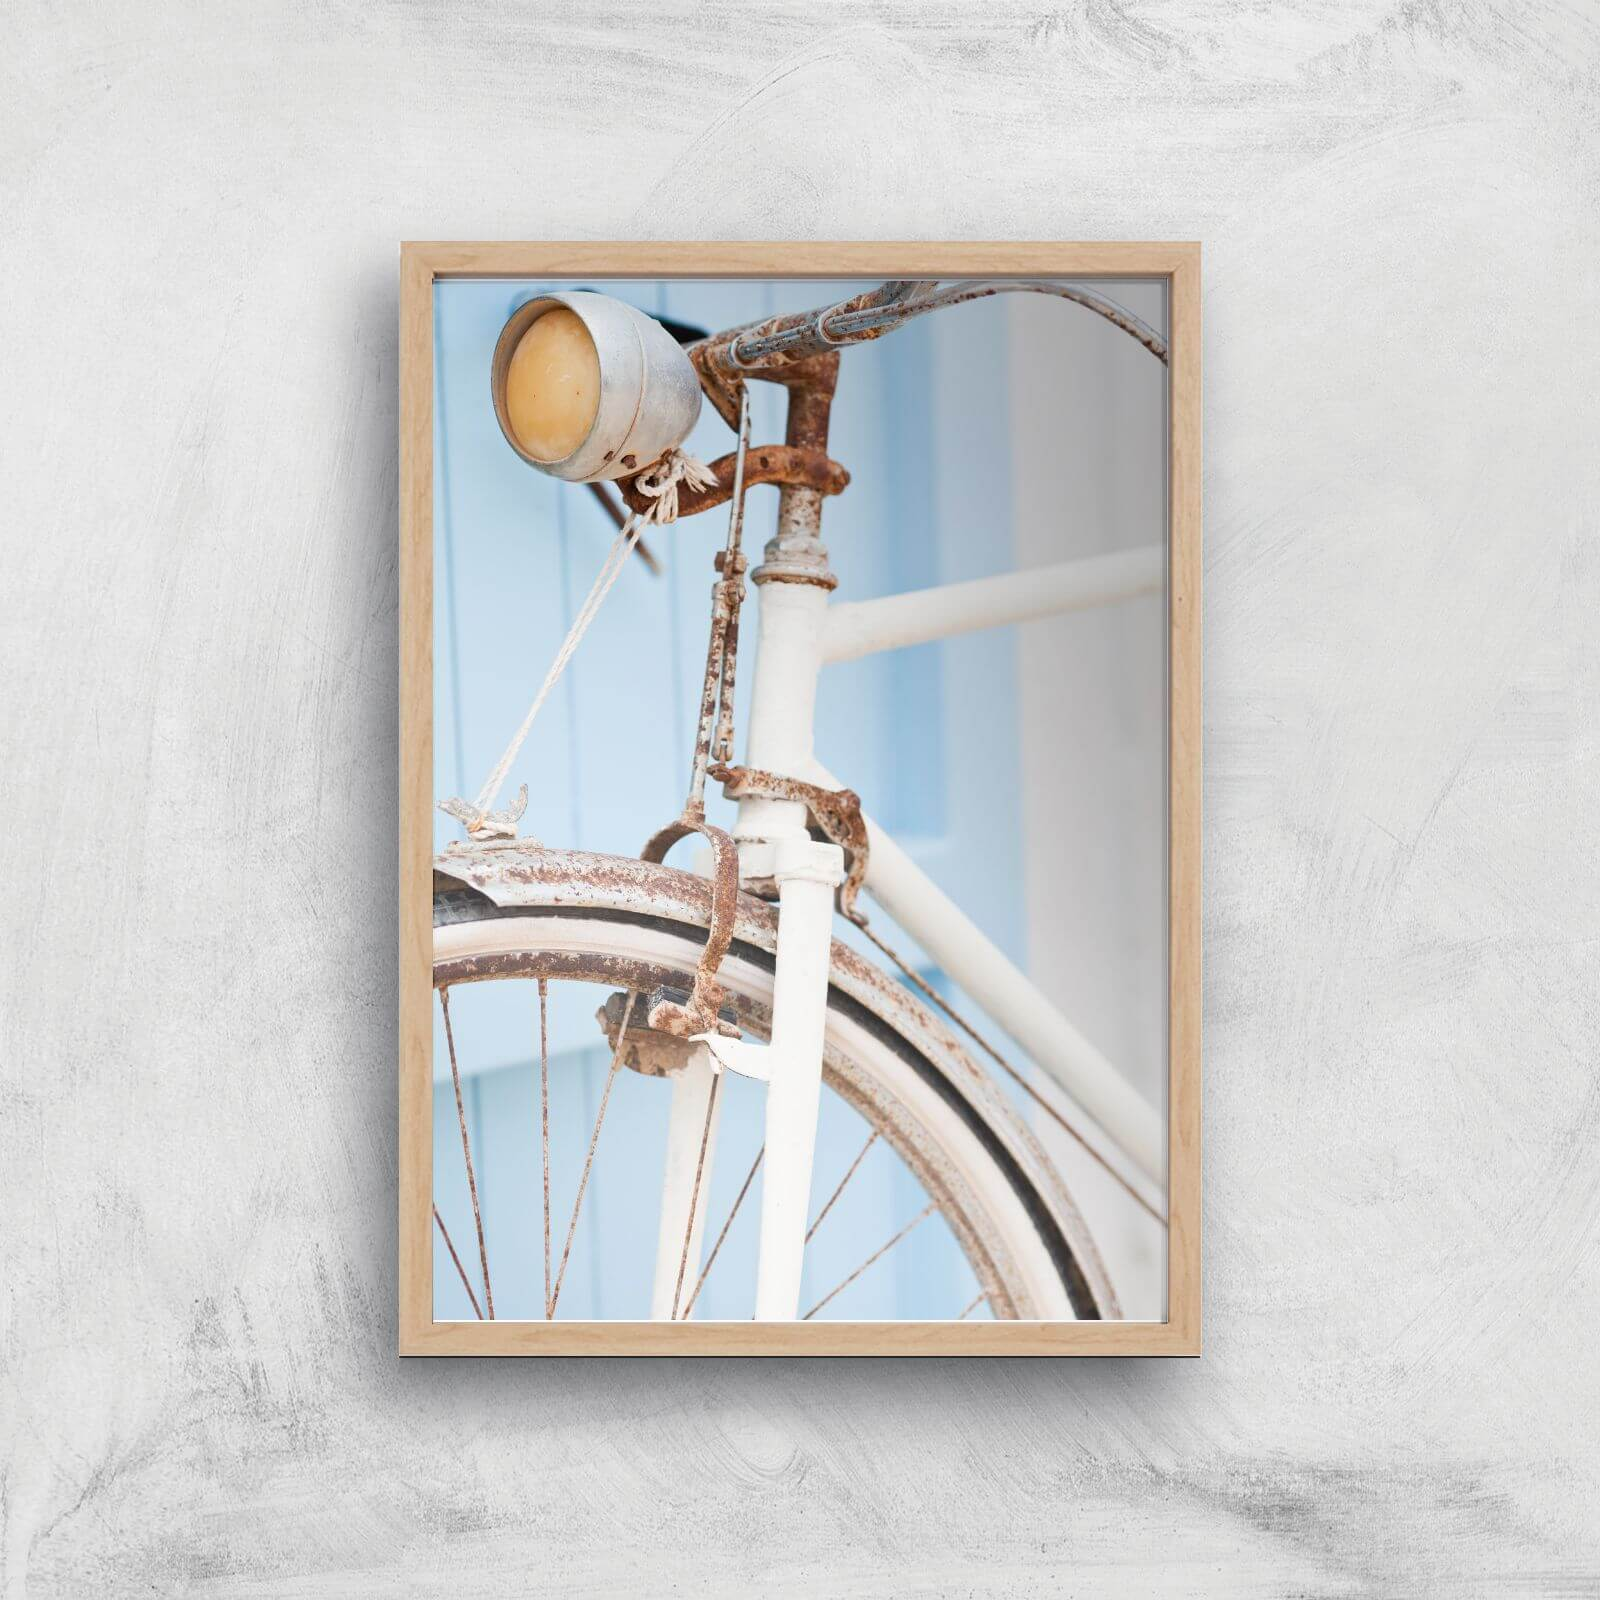 Rusty Bicycle Giclee Art Print   A2   Wooden Frame